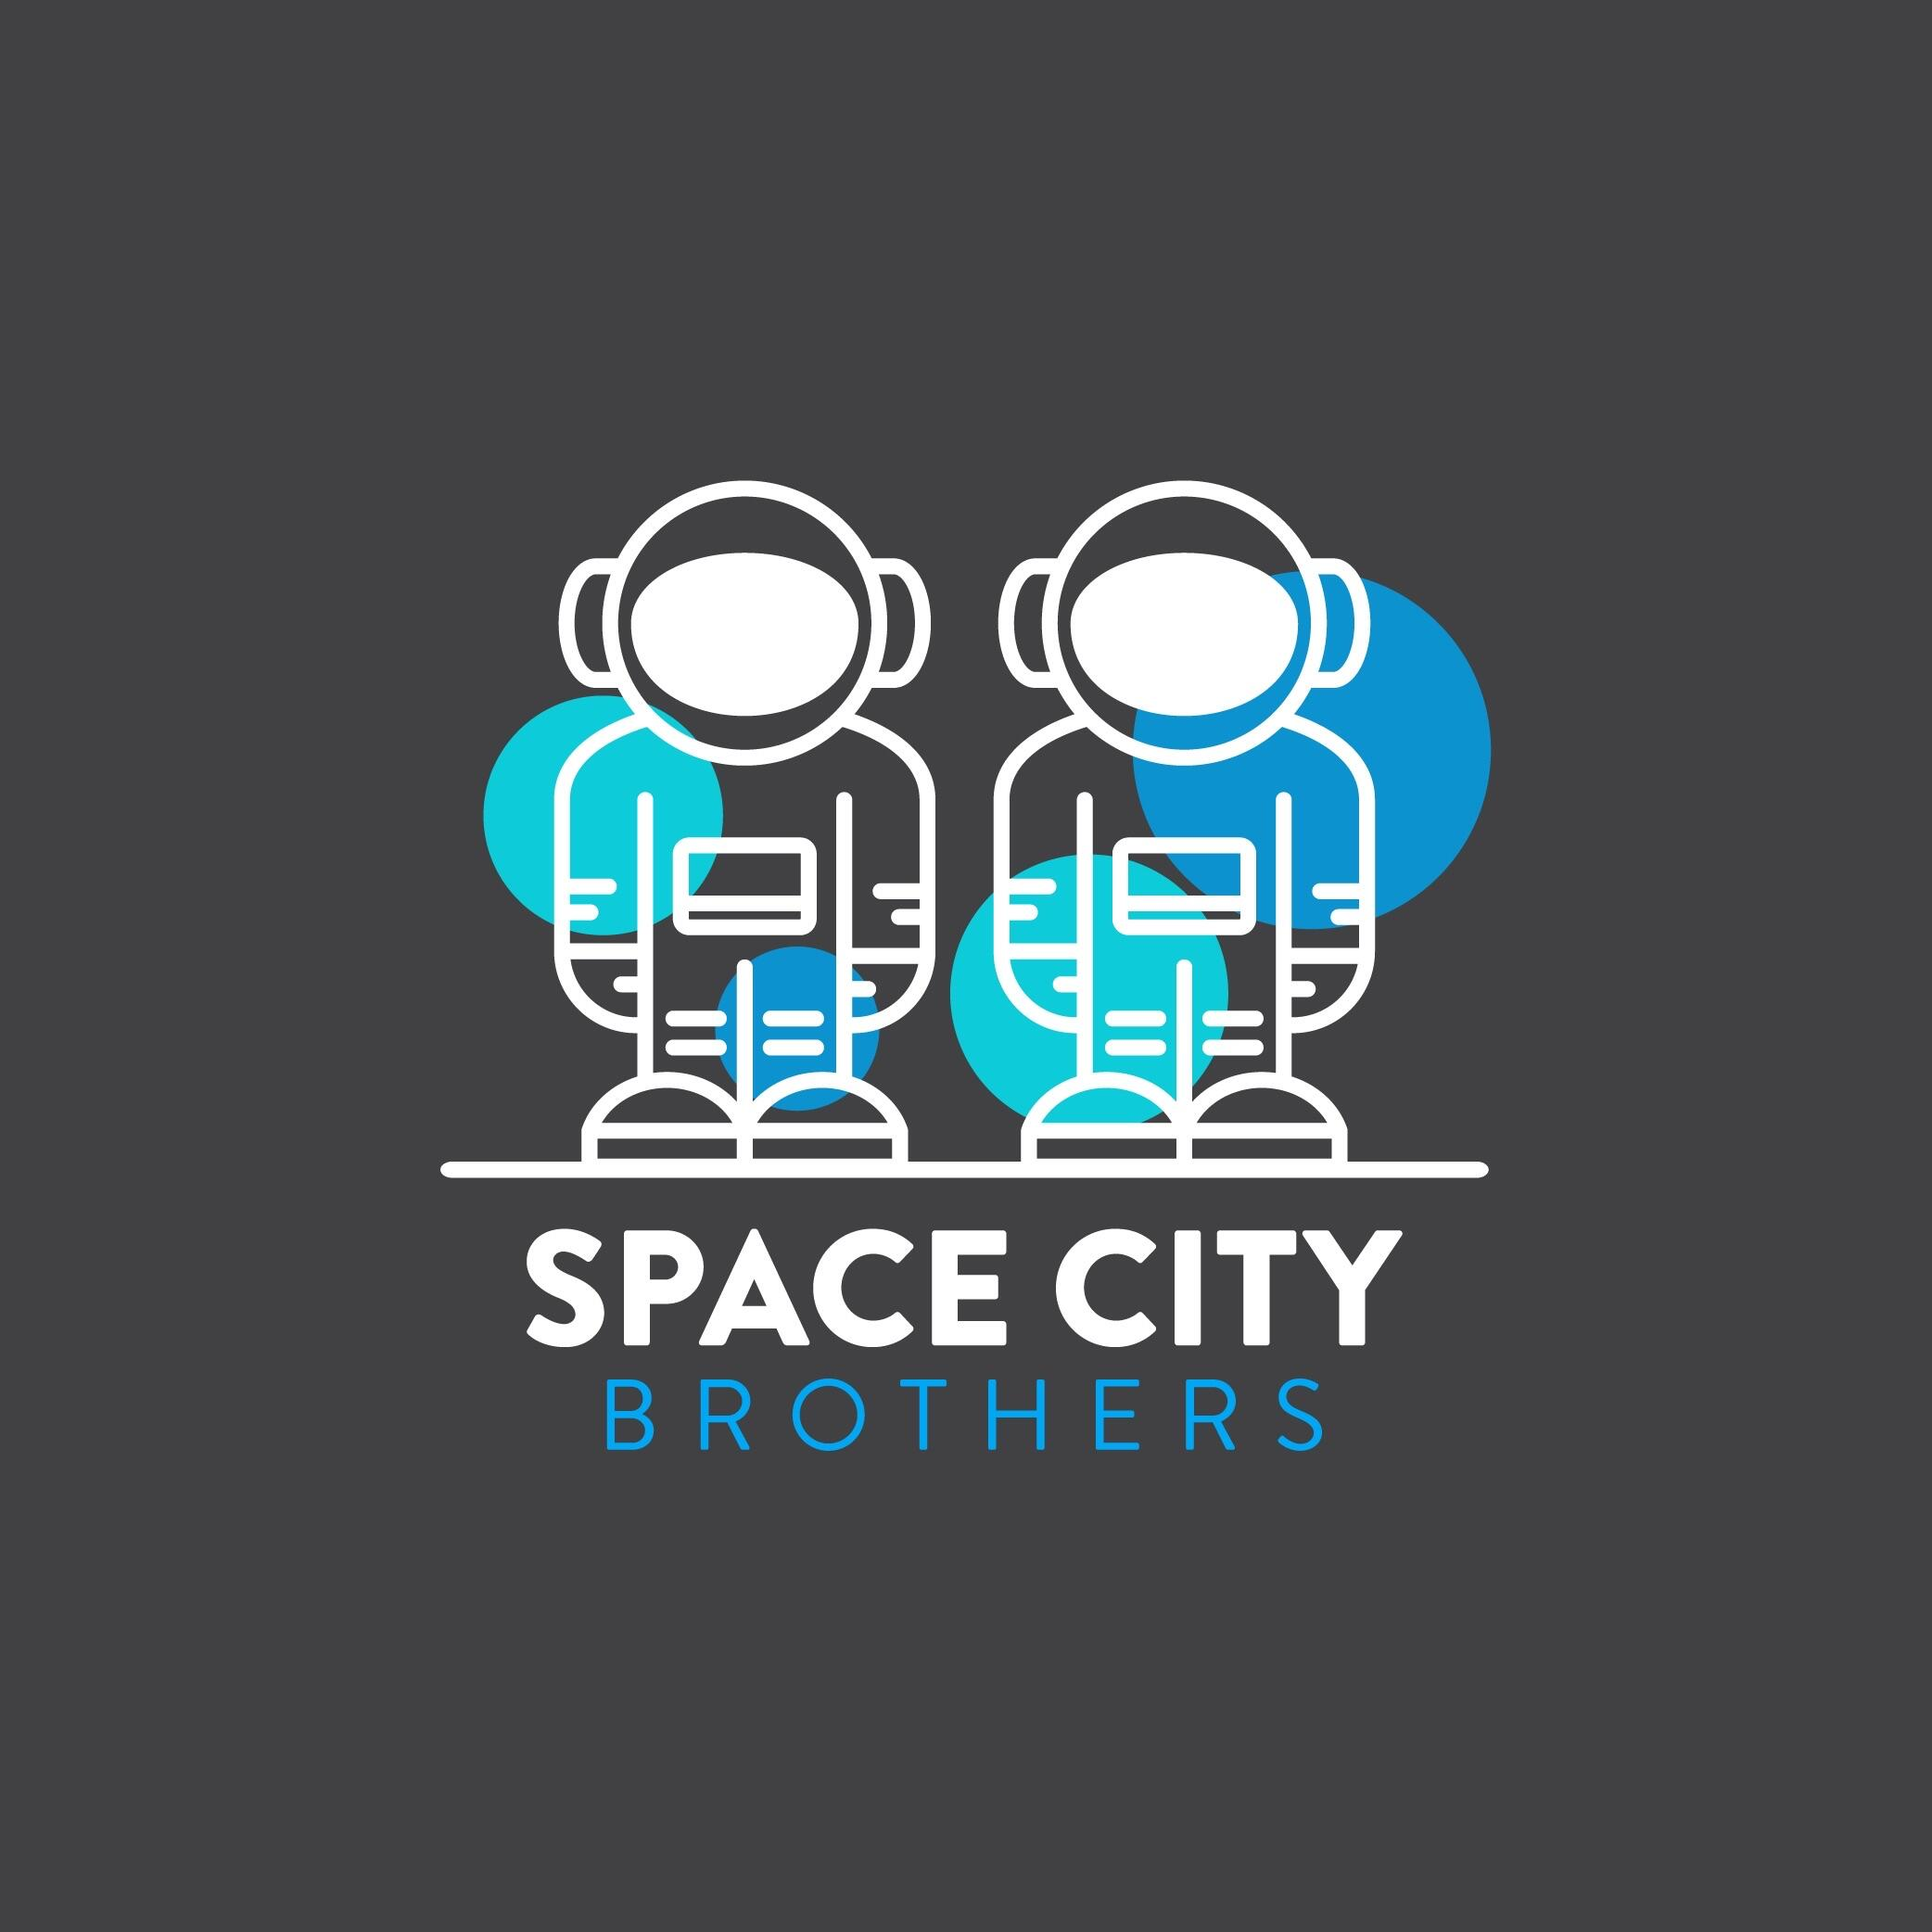 Listen to the Space City Brothers Podcast Episode - Ep. 82 - Gym High Fives - Space City Brothers Podcast on iHeartRadio | iHeartRadio